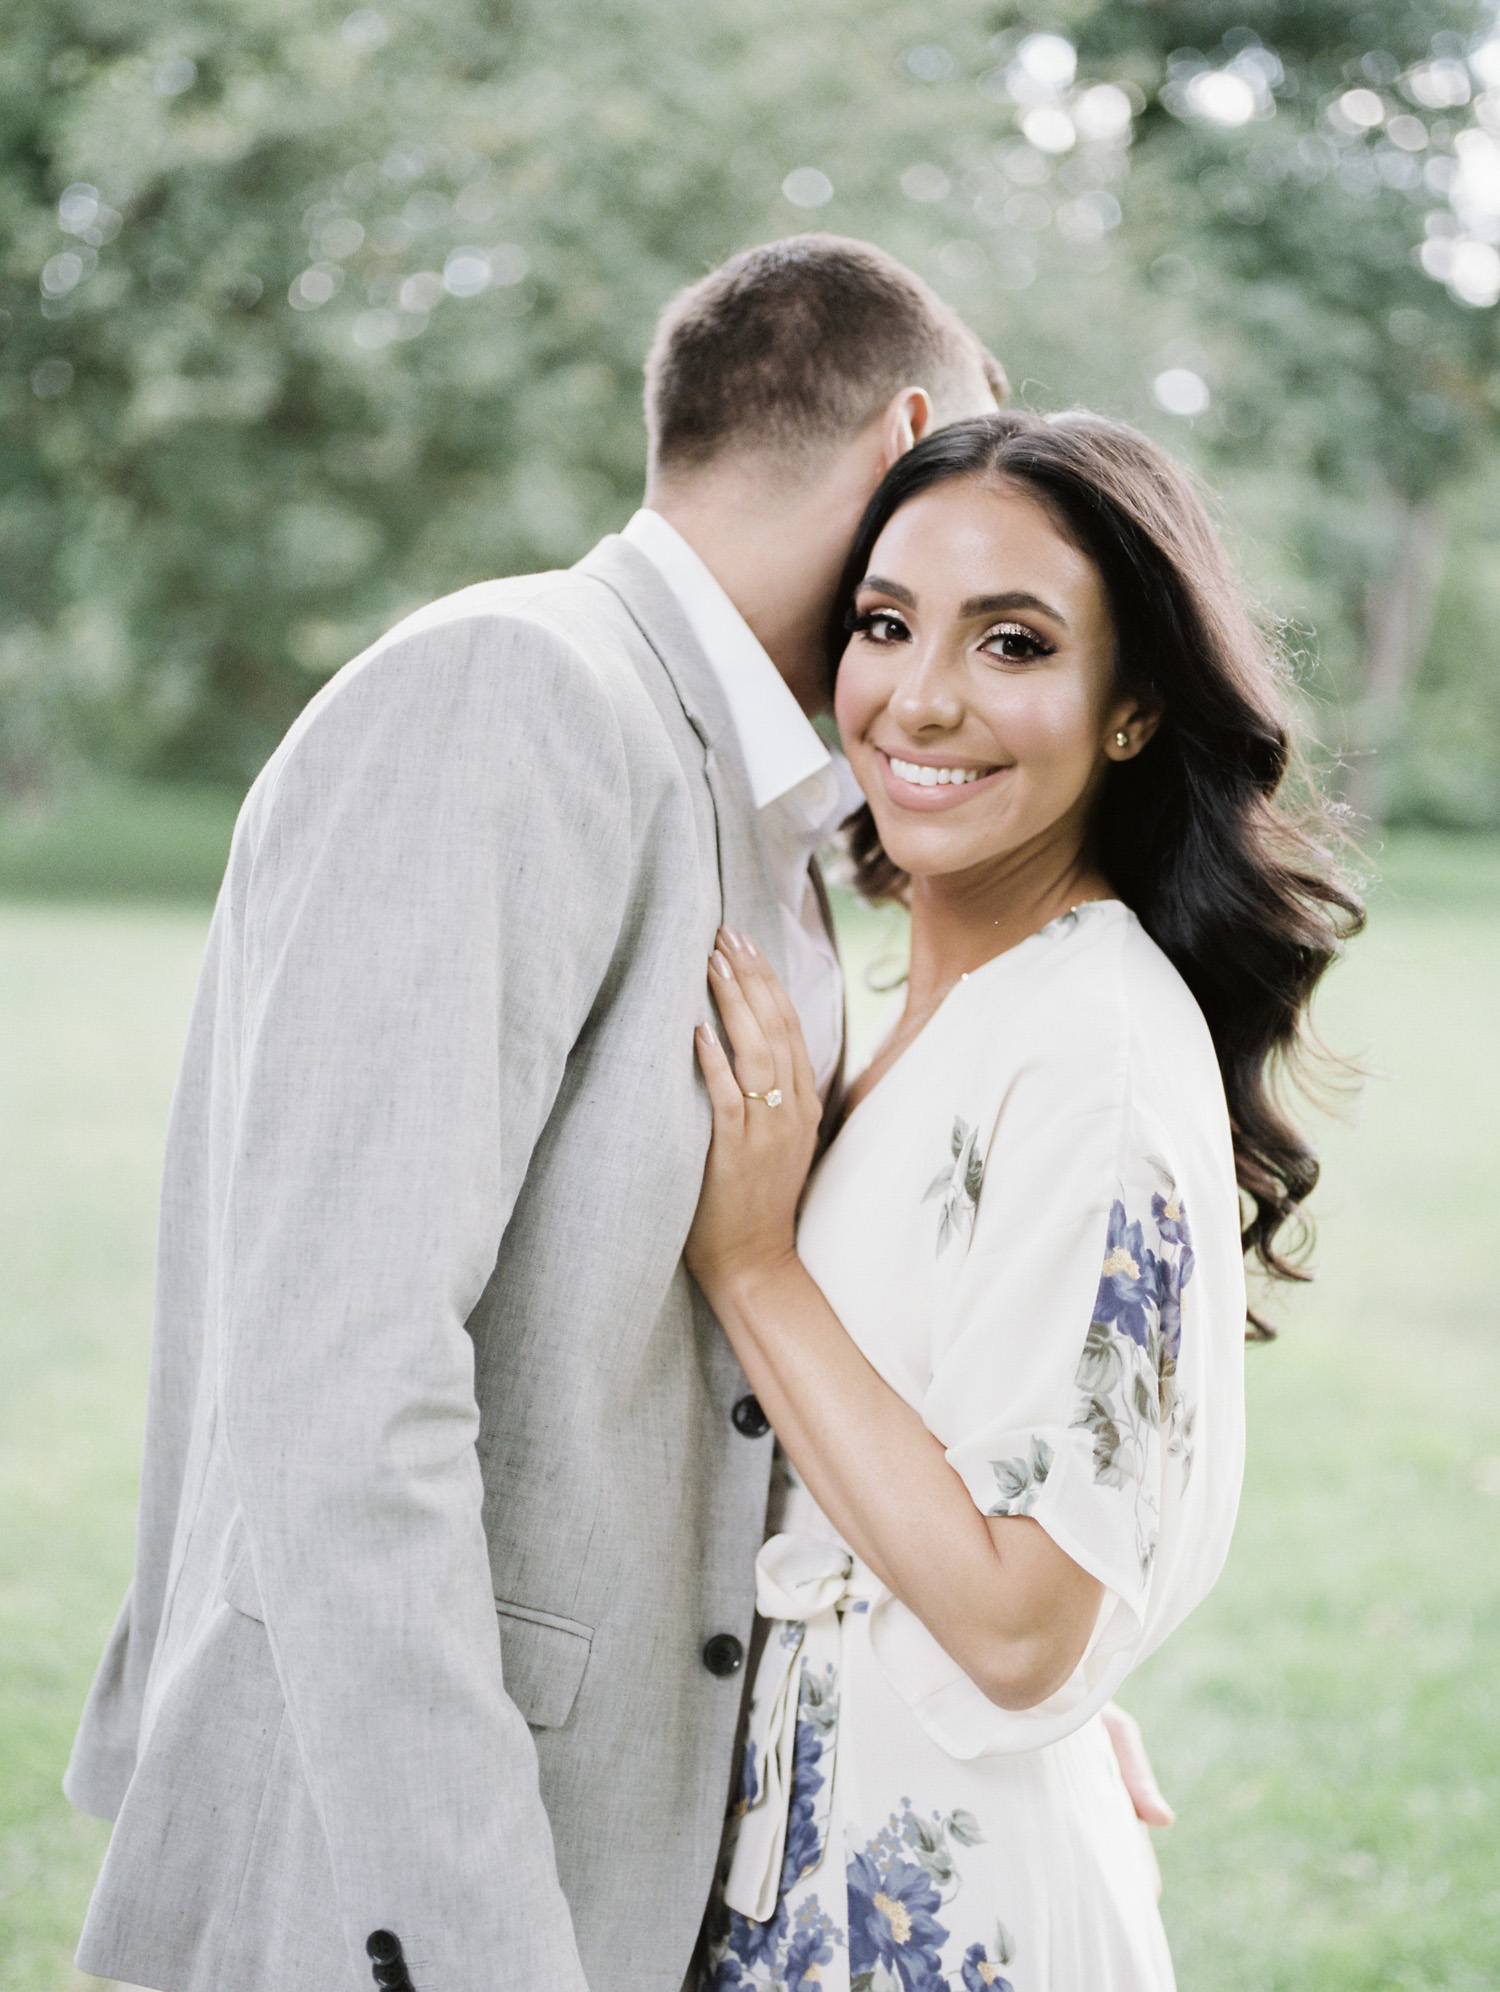 A beautiful Arab woman smiles while embracing her man during their film engagement photos at the Ford House in Detroit, Michigan